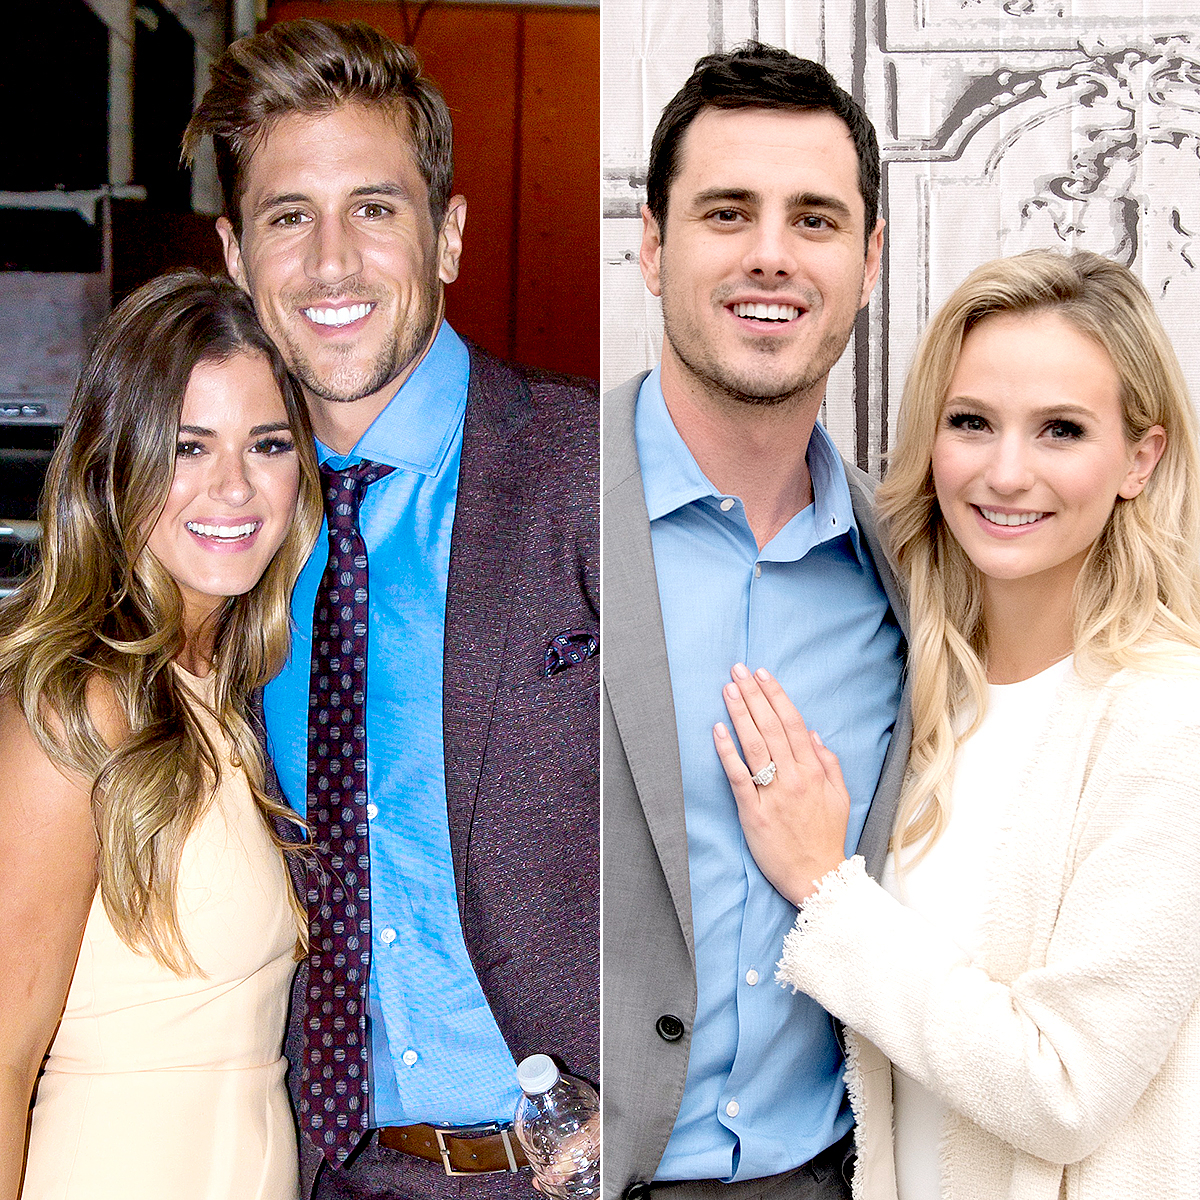 JoJo Fletcher And Jordan Rodger Ben Higgins Lauren Bushnell